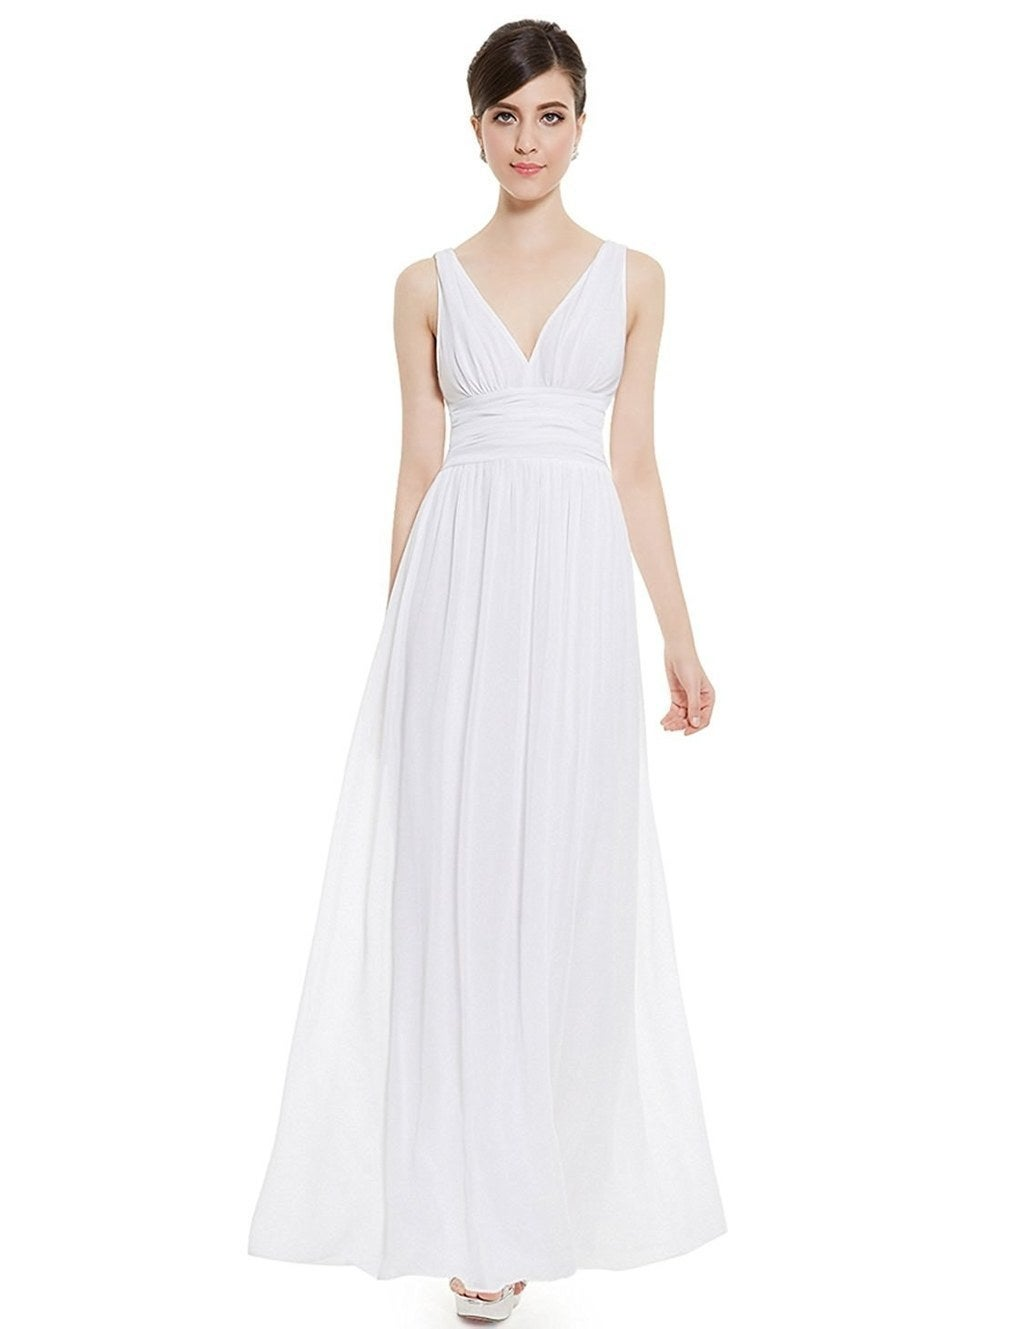 20 gorgeous wedding dresses you wont believe you can get on amazon a casual maxi dress that is perfect for save the date invitations and engagement photo shoots ombrellifo Image collections